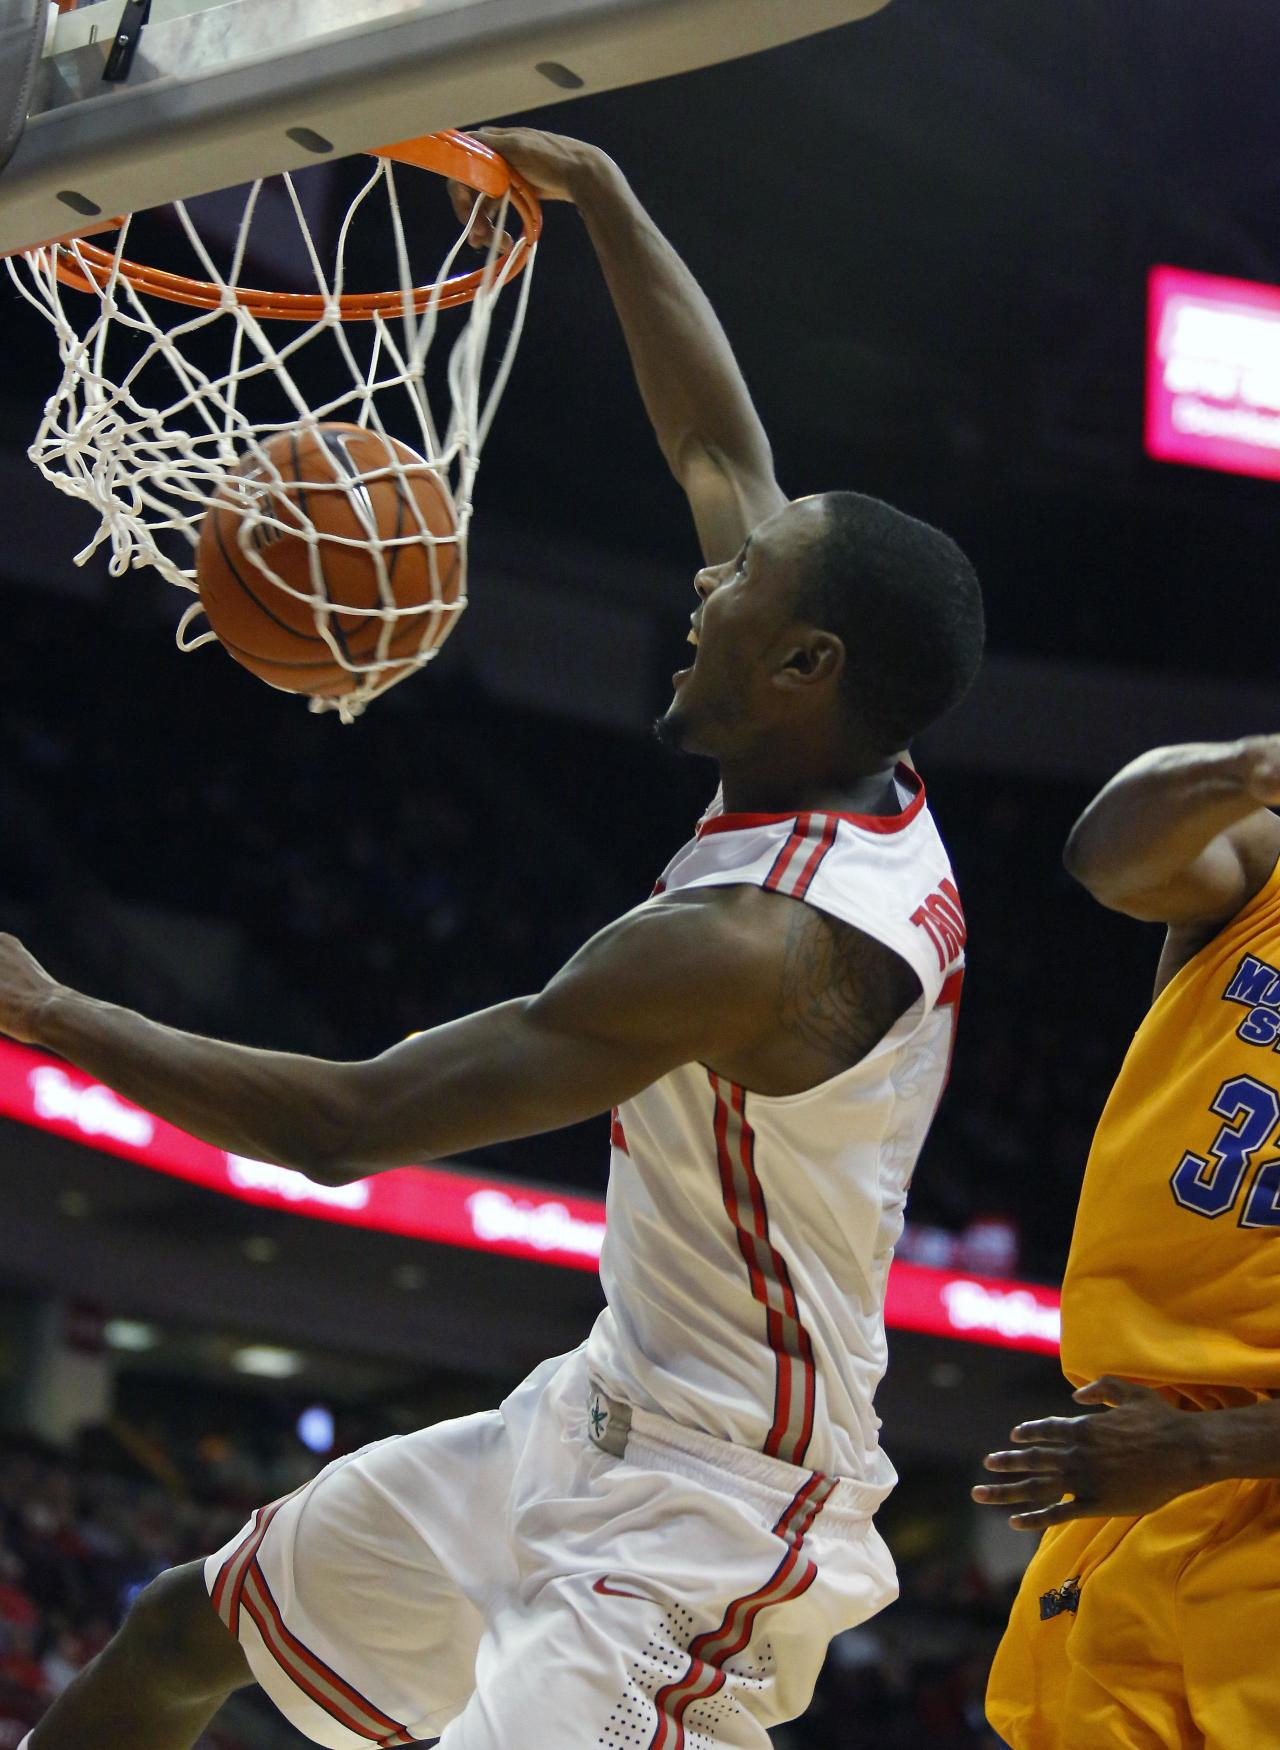 Dunk of the year nominee: Sam Thompson's inbound alley-oop